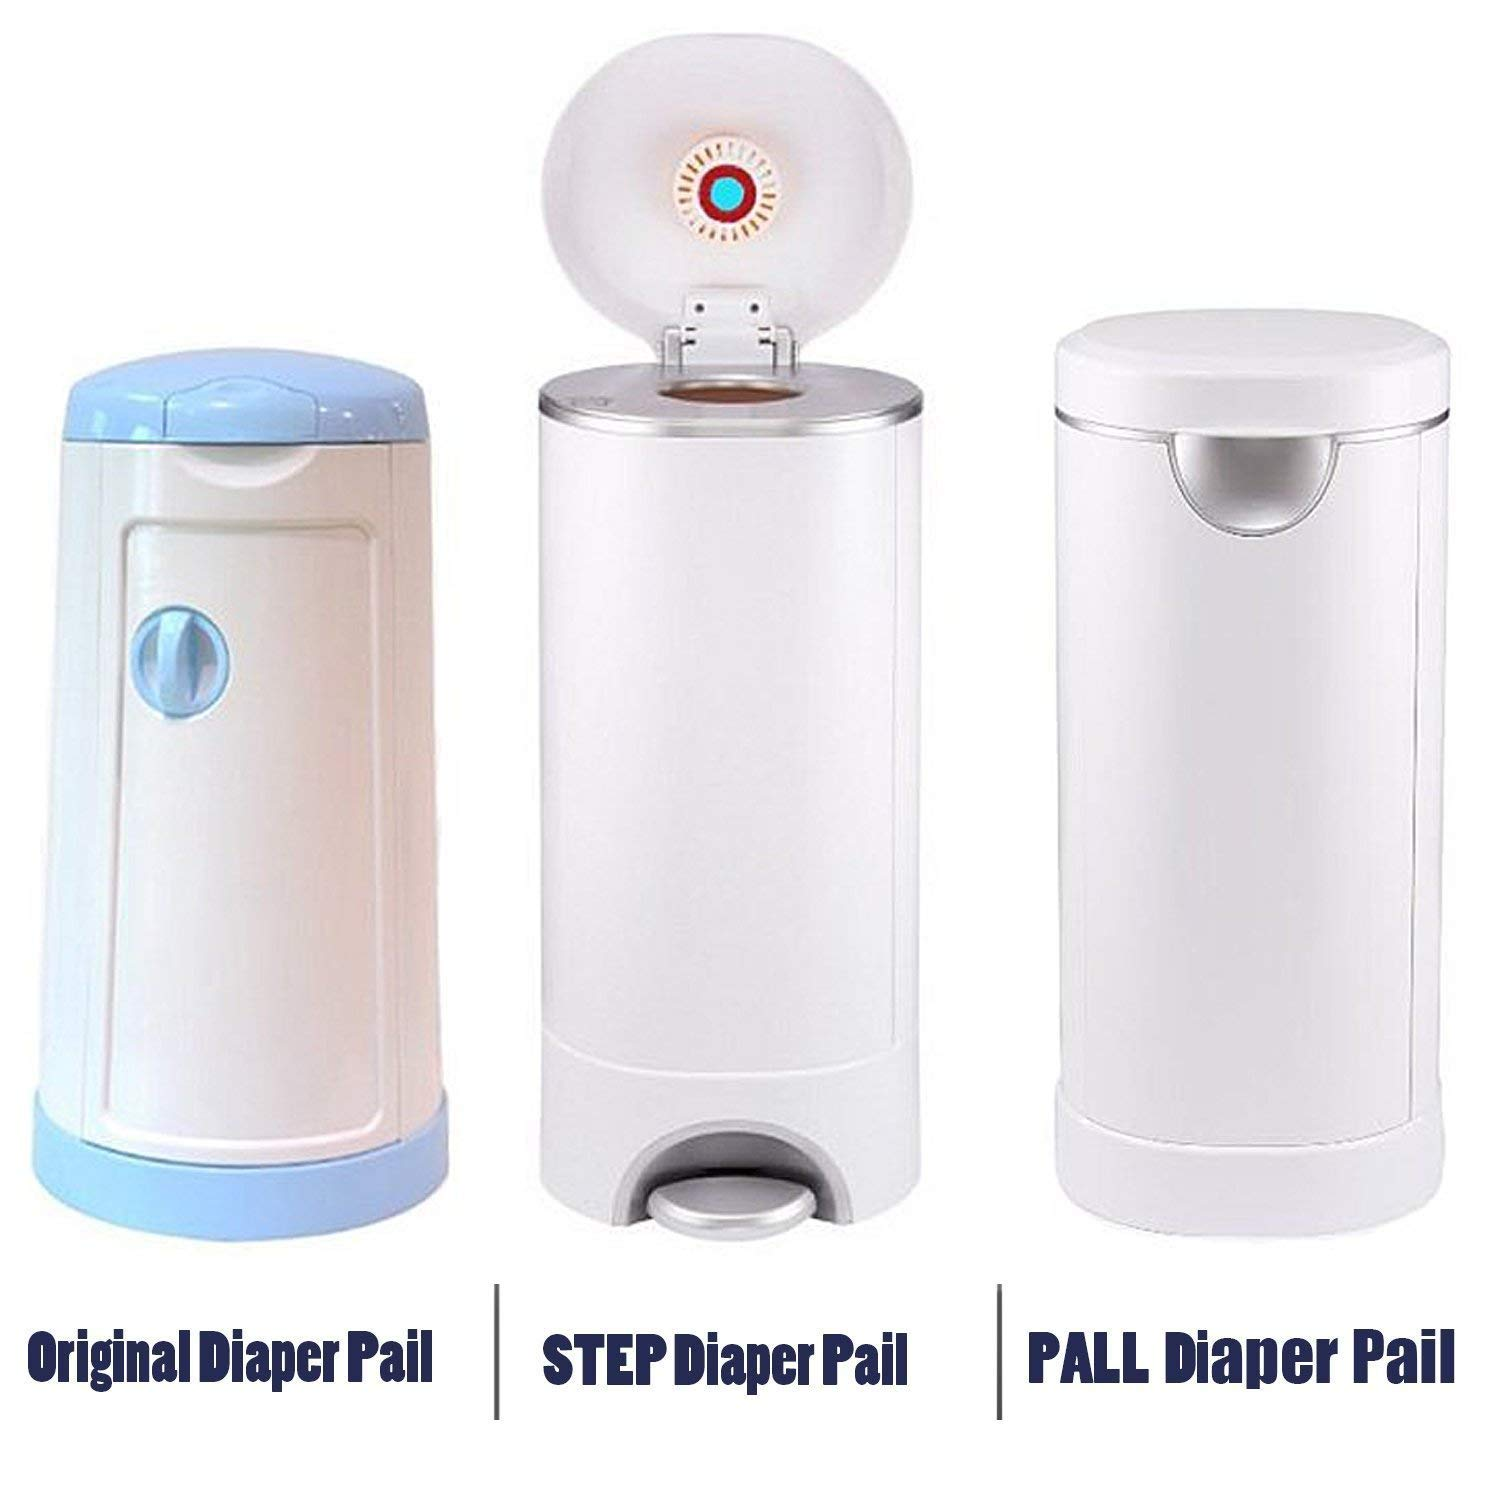 Diaper Pail Refill Bags Compatible with Arm&Hammer Disposal System- 960 Counts, 32 Bags by GoodCare